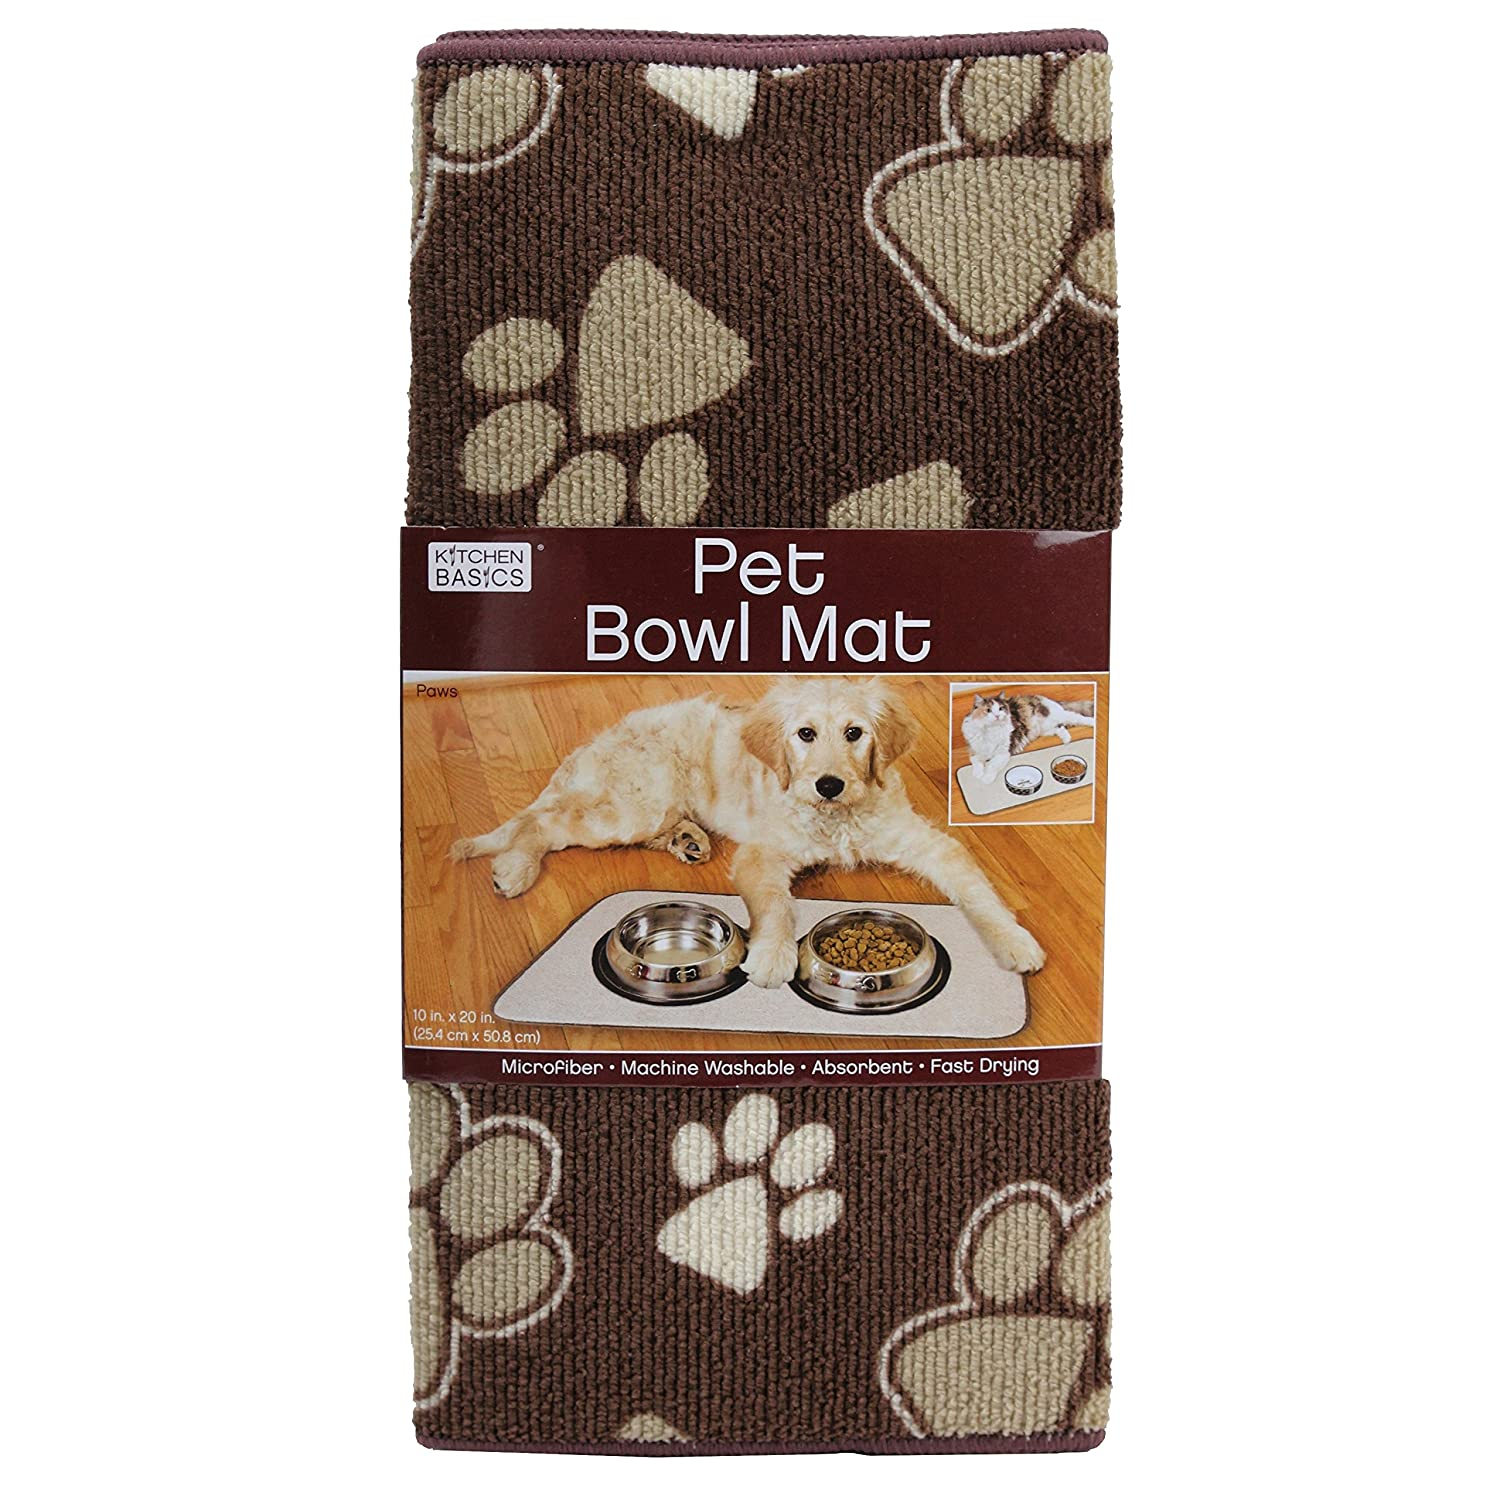 mats product pet paw pad products bowl puppy blanket dog supplies cute feeding dish mat food feed water pvc placemat image cat bed